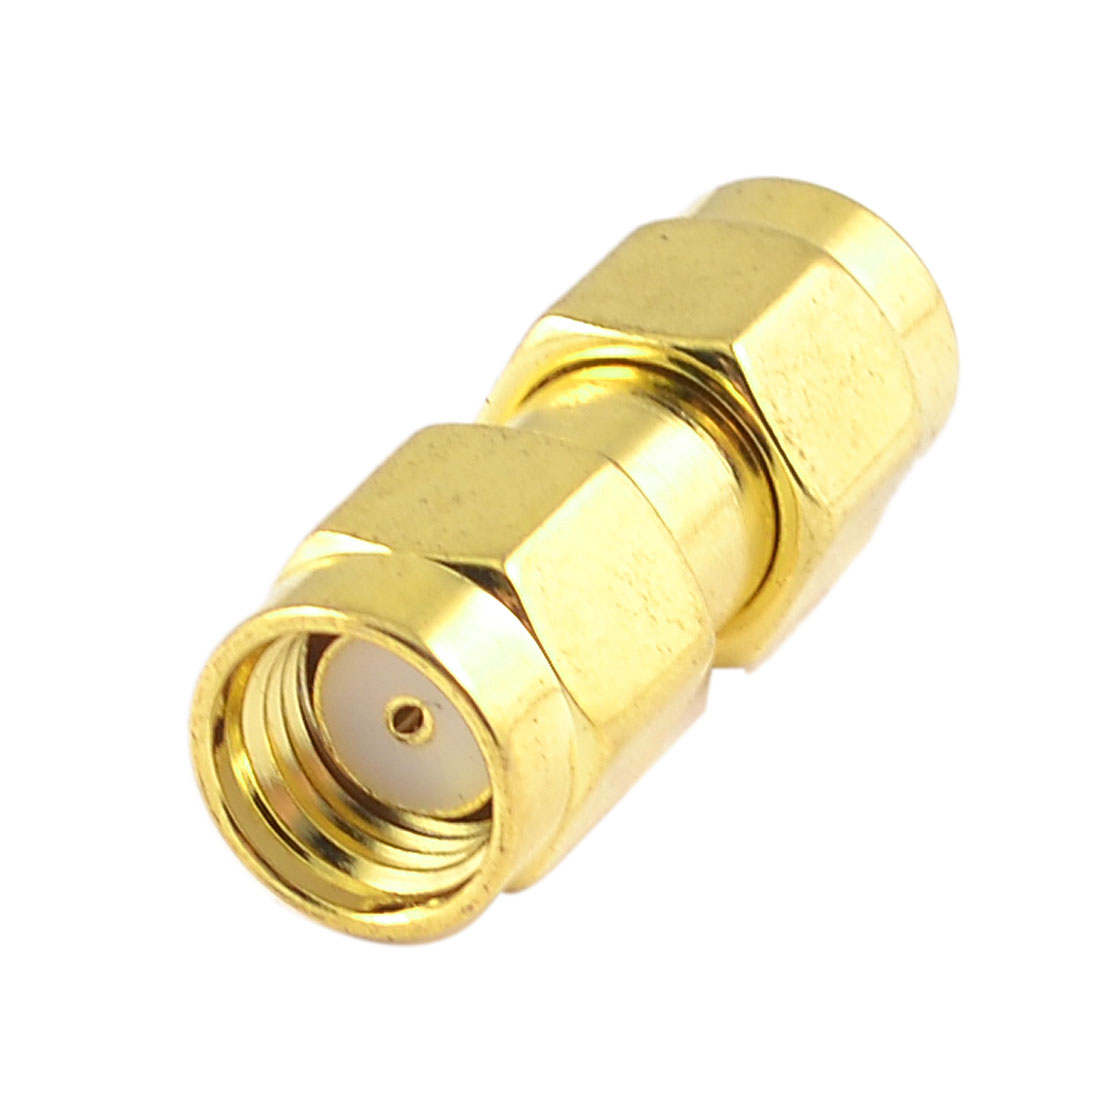 Gold Tone Straight SMA Female to Female RF Coaxial Adapter Connector